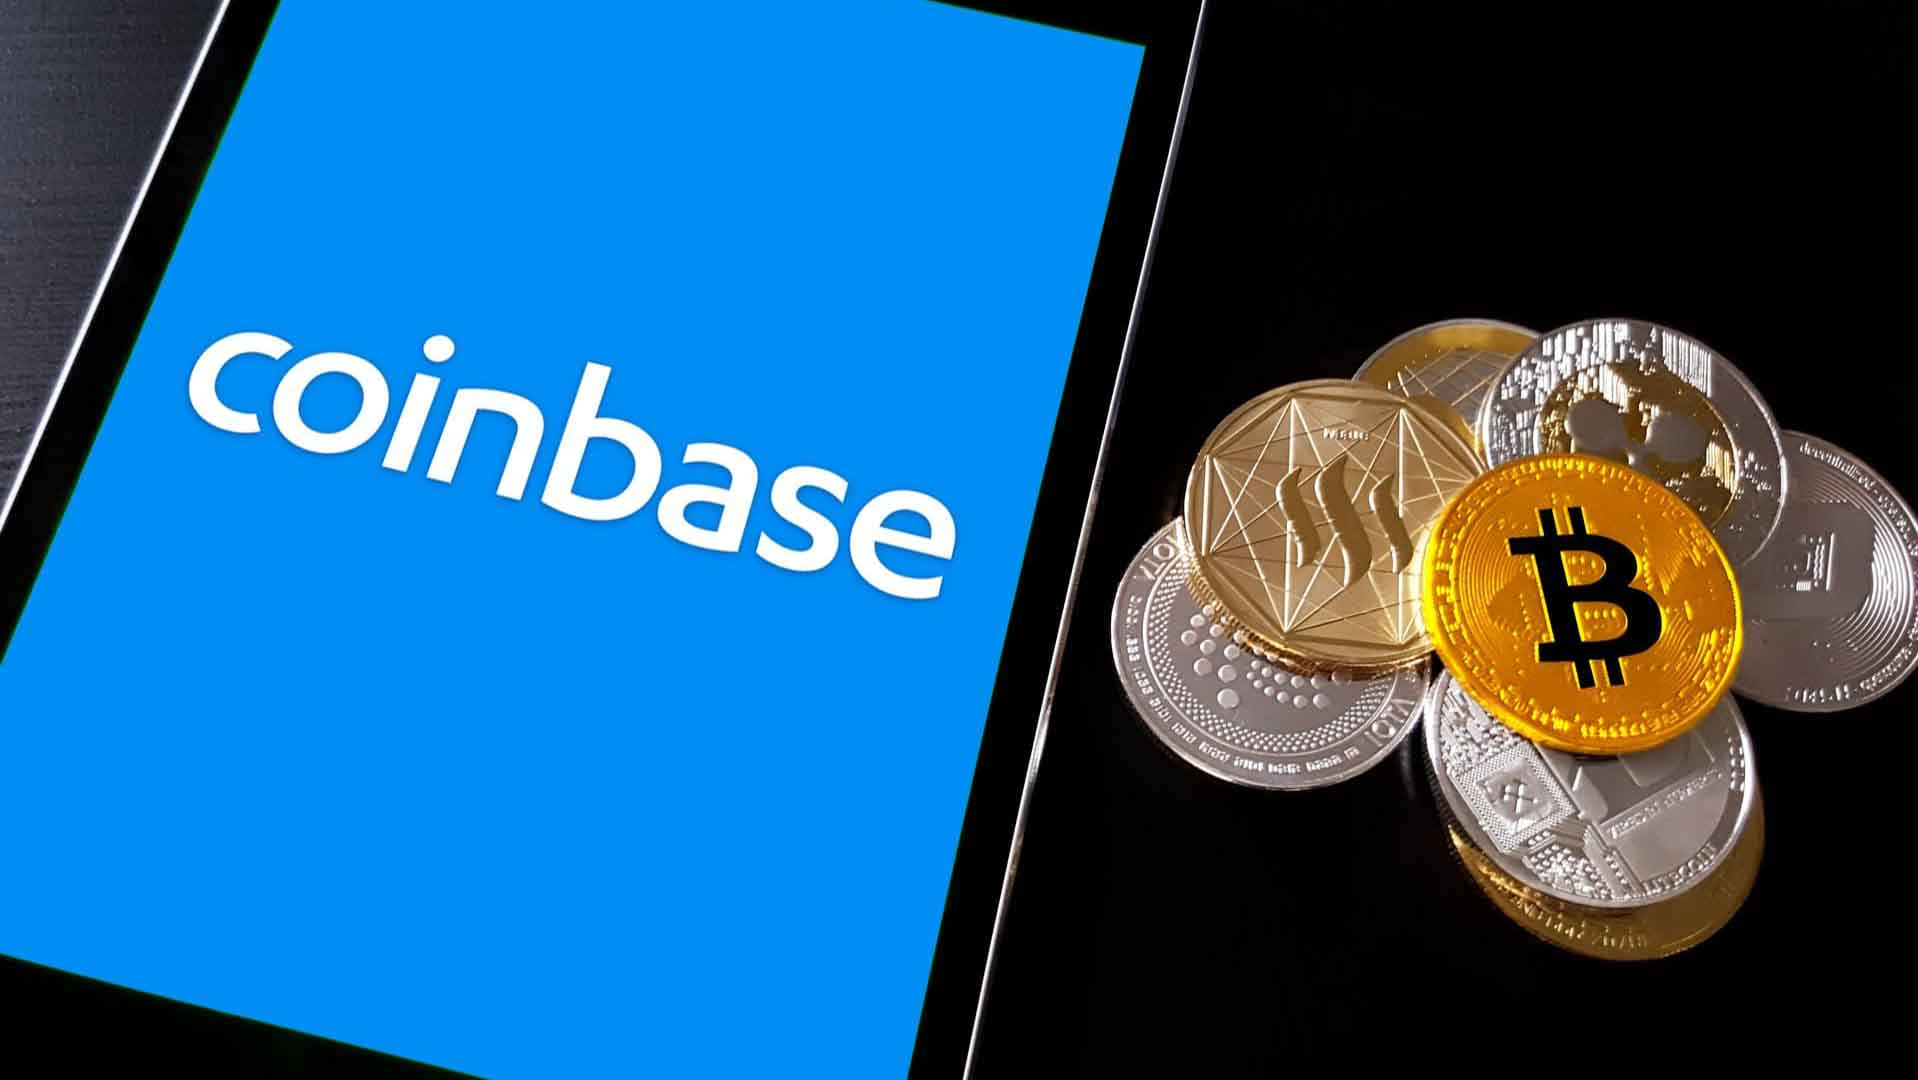 Xmaket - Coinbase intends to use Nasdaq during its direct listing debut